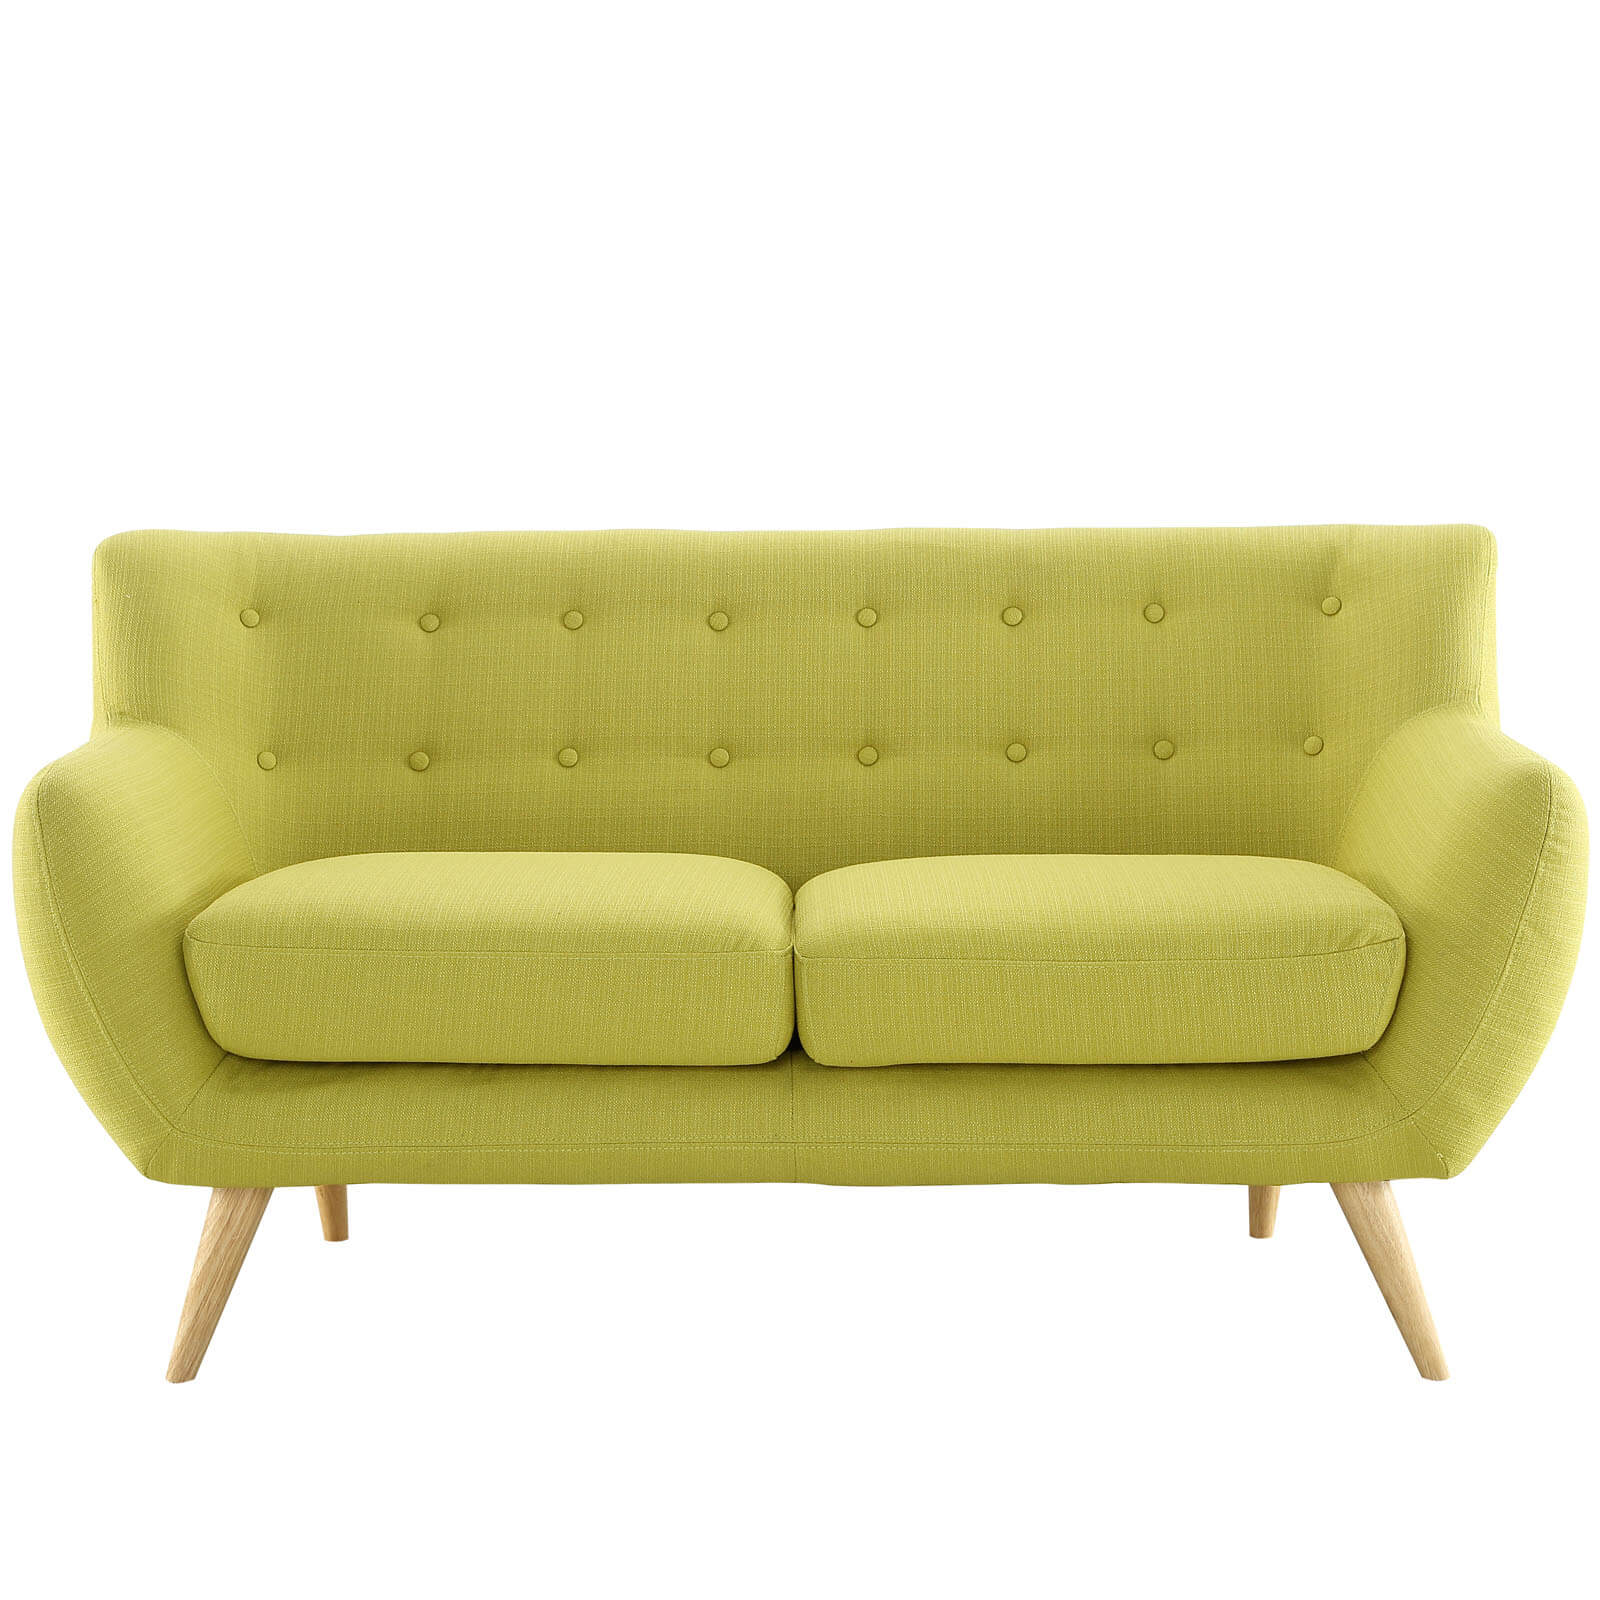 seater engle loveseat retro sofa arc